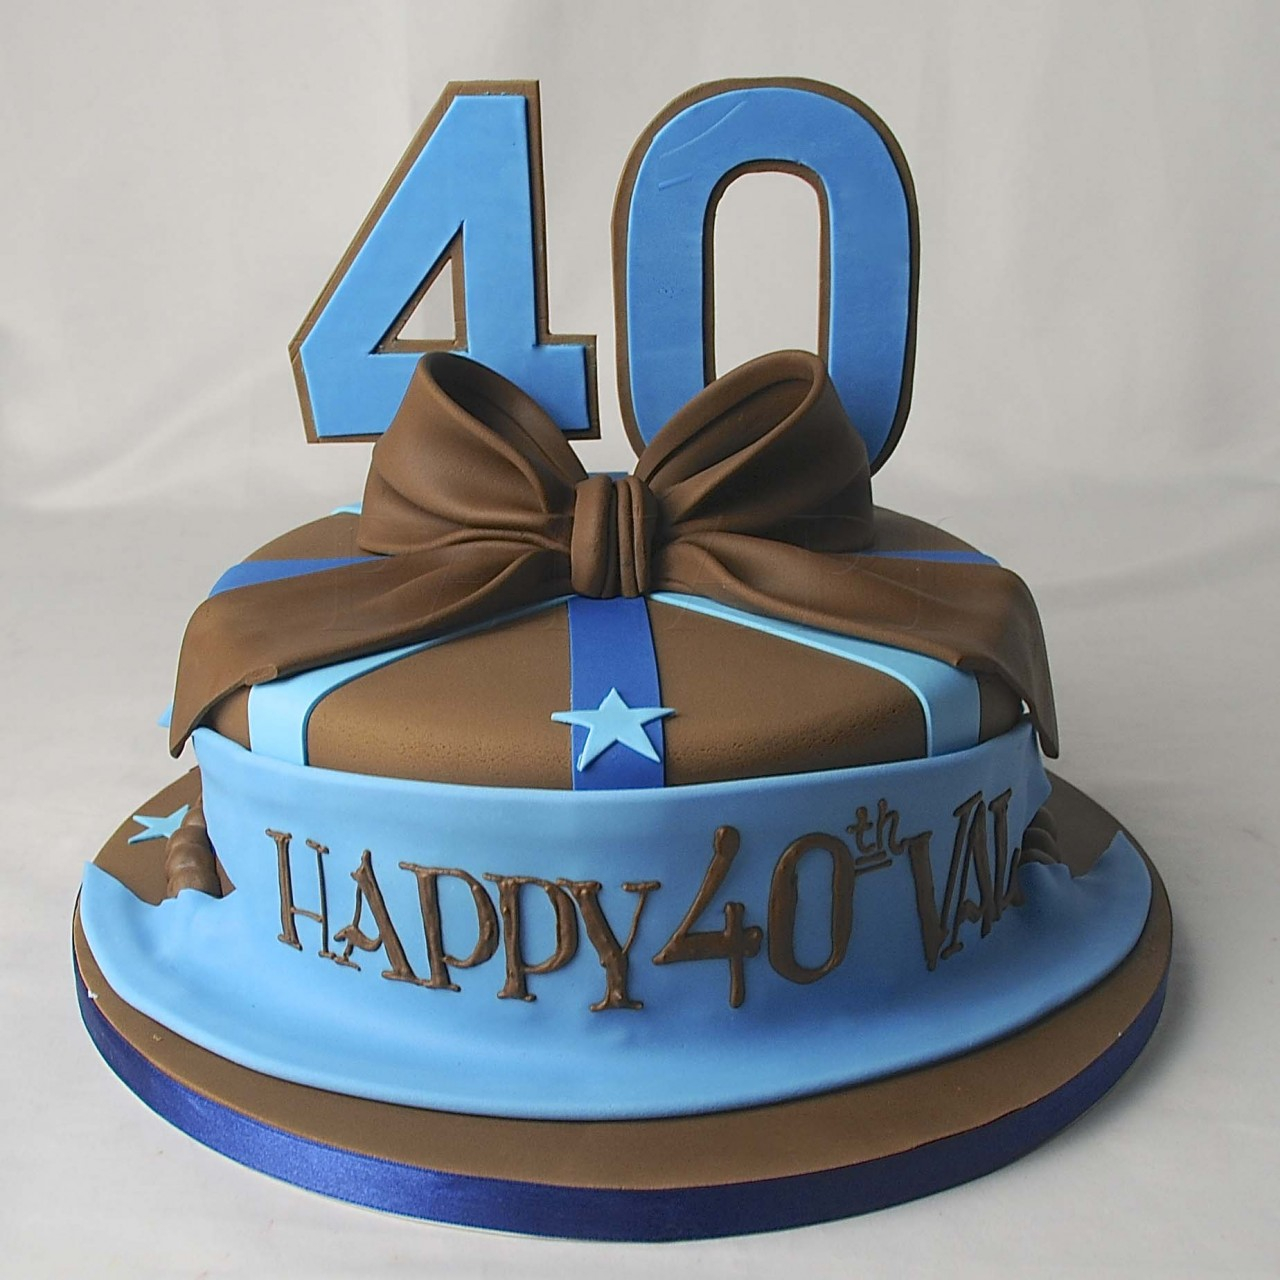 1280 In 30 Marvelous Picture Of 40Th Birthday Cake Ideas